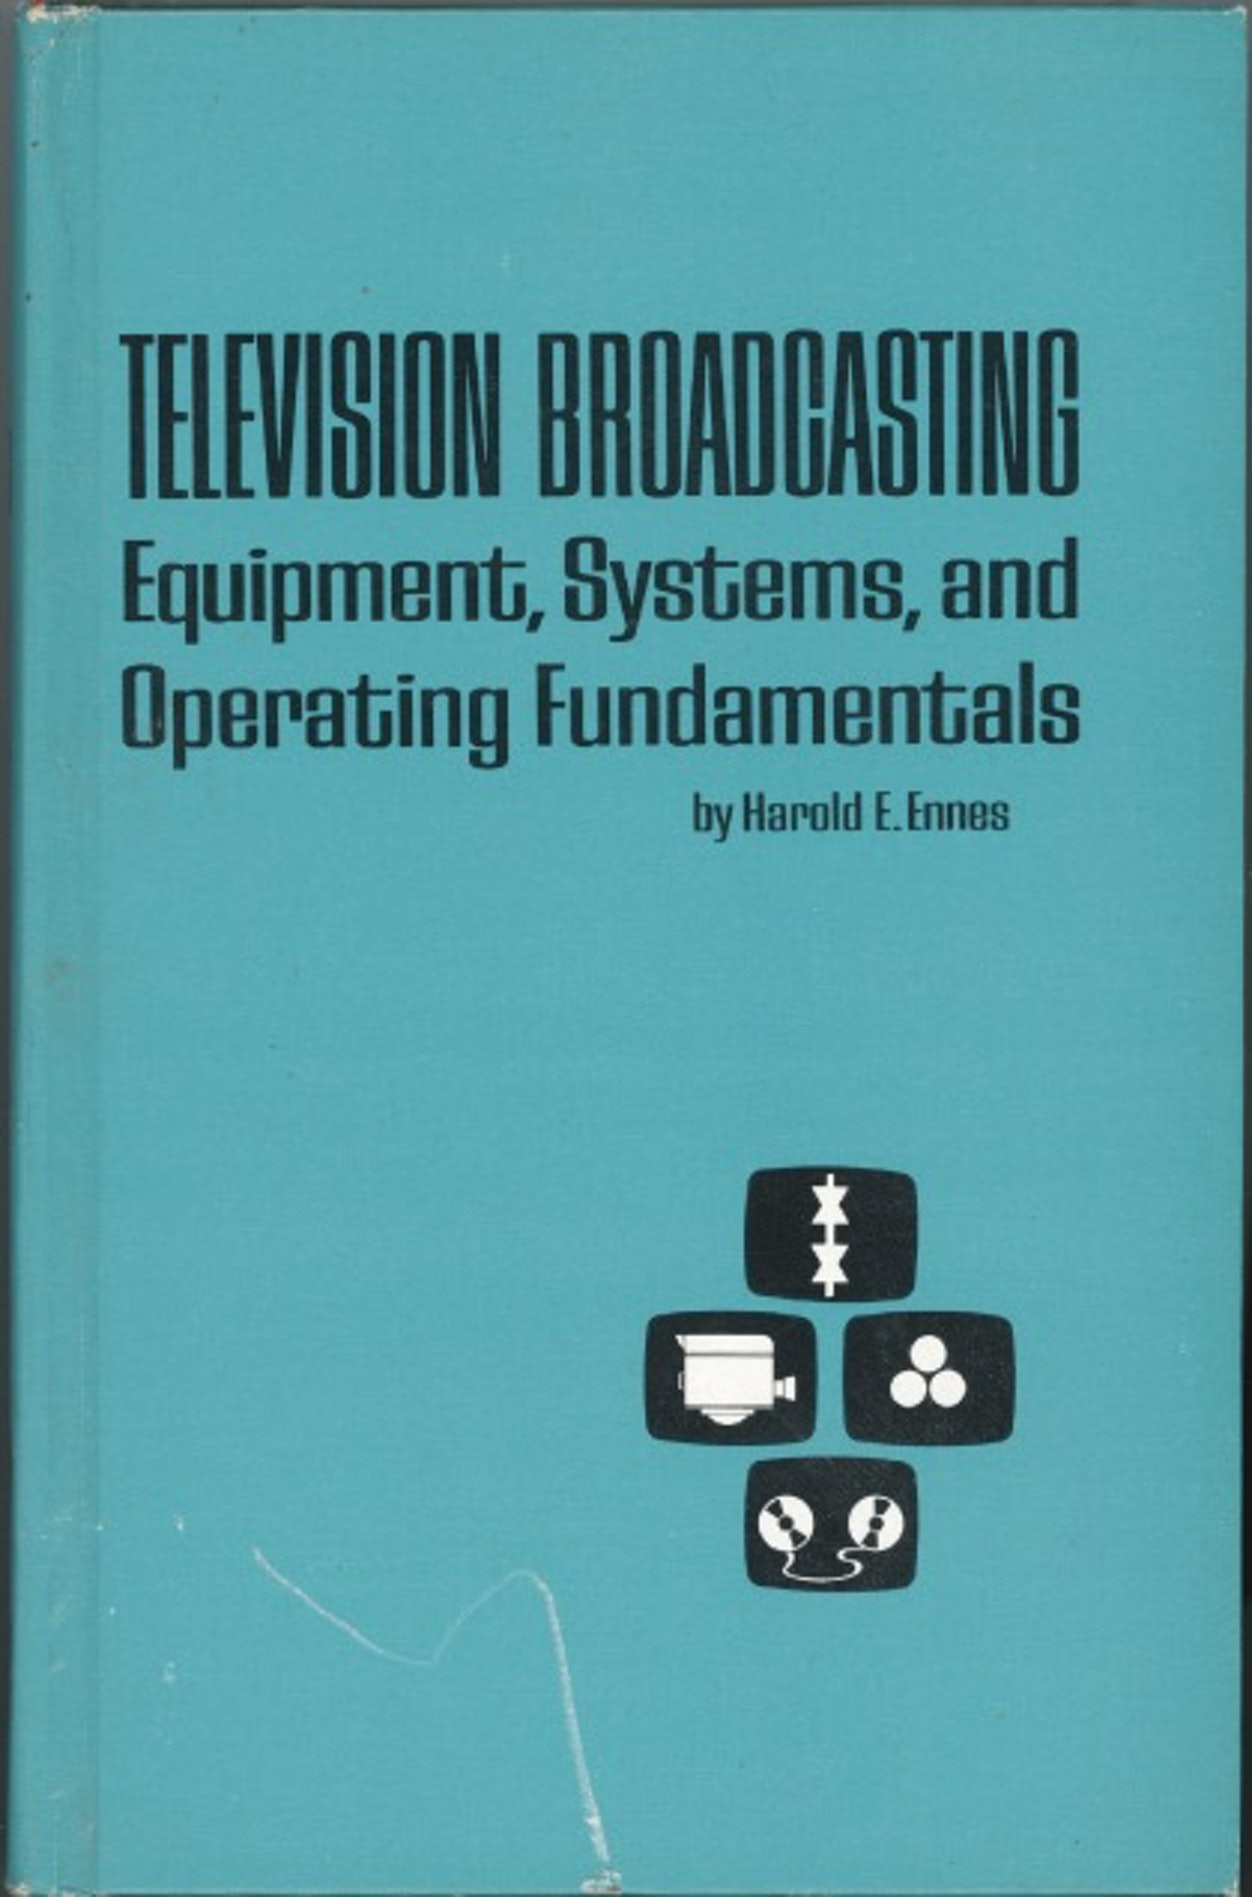 Television Broadcasting Equipment, Systems, and Operating Fundamentals